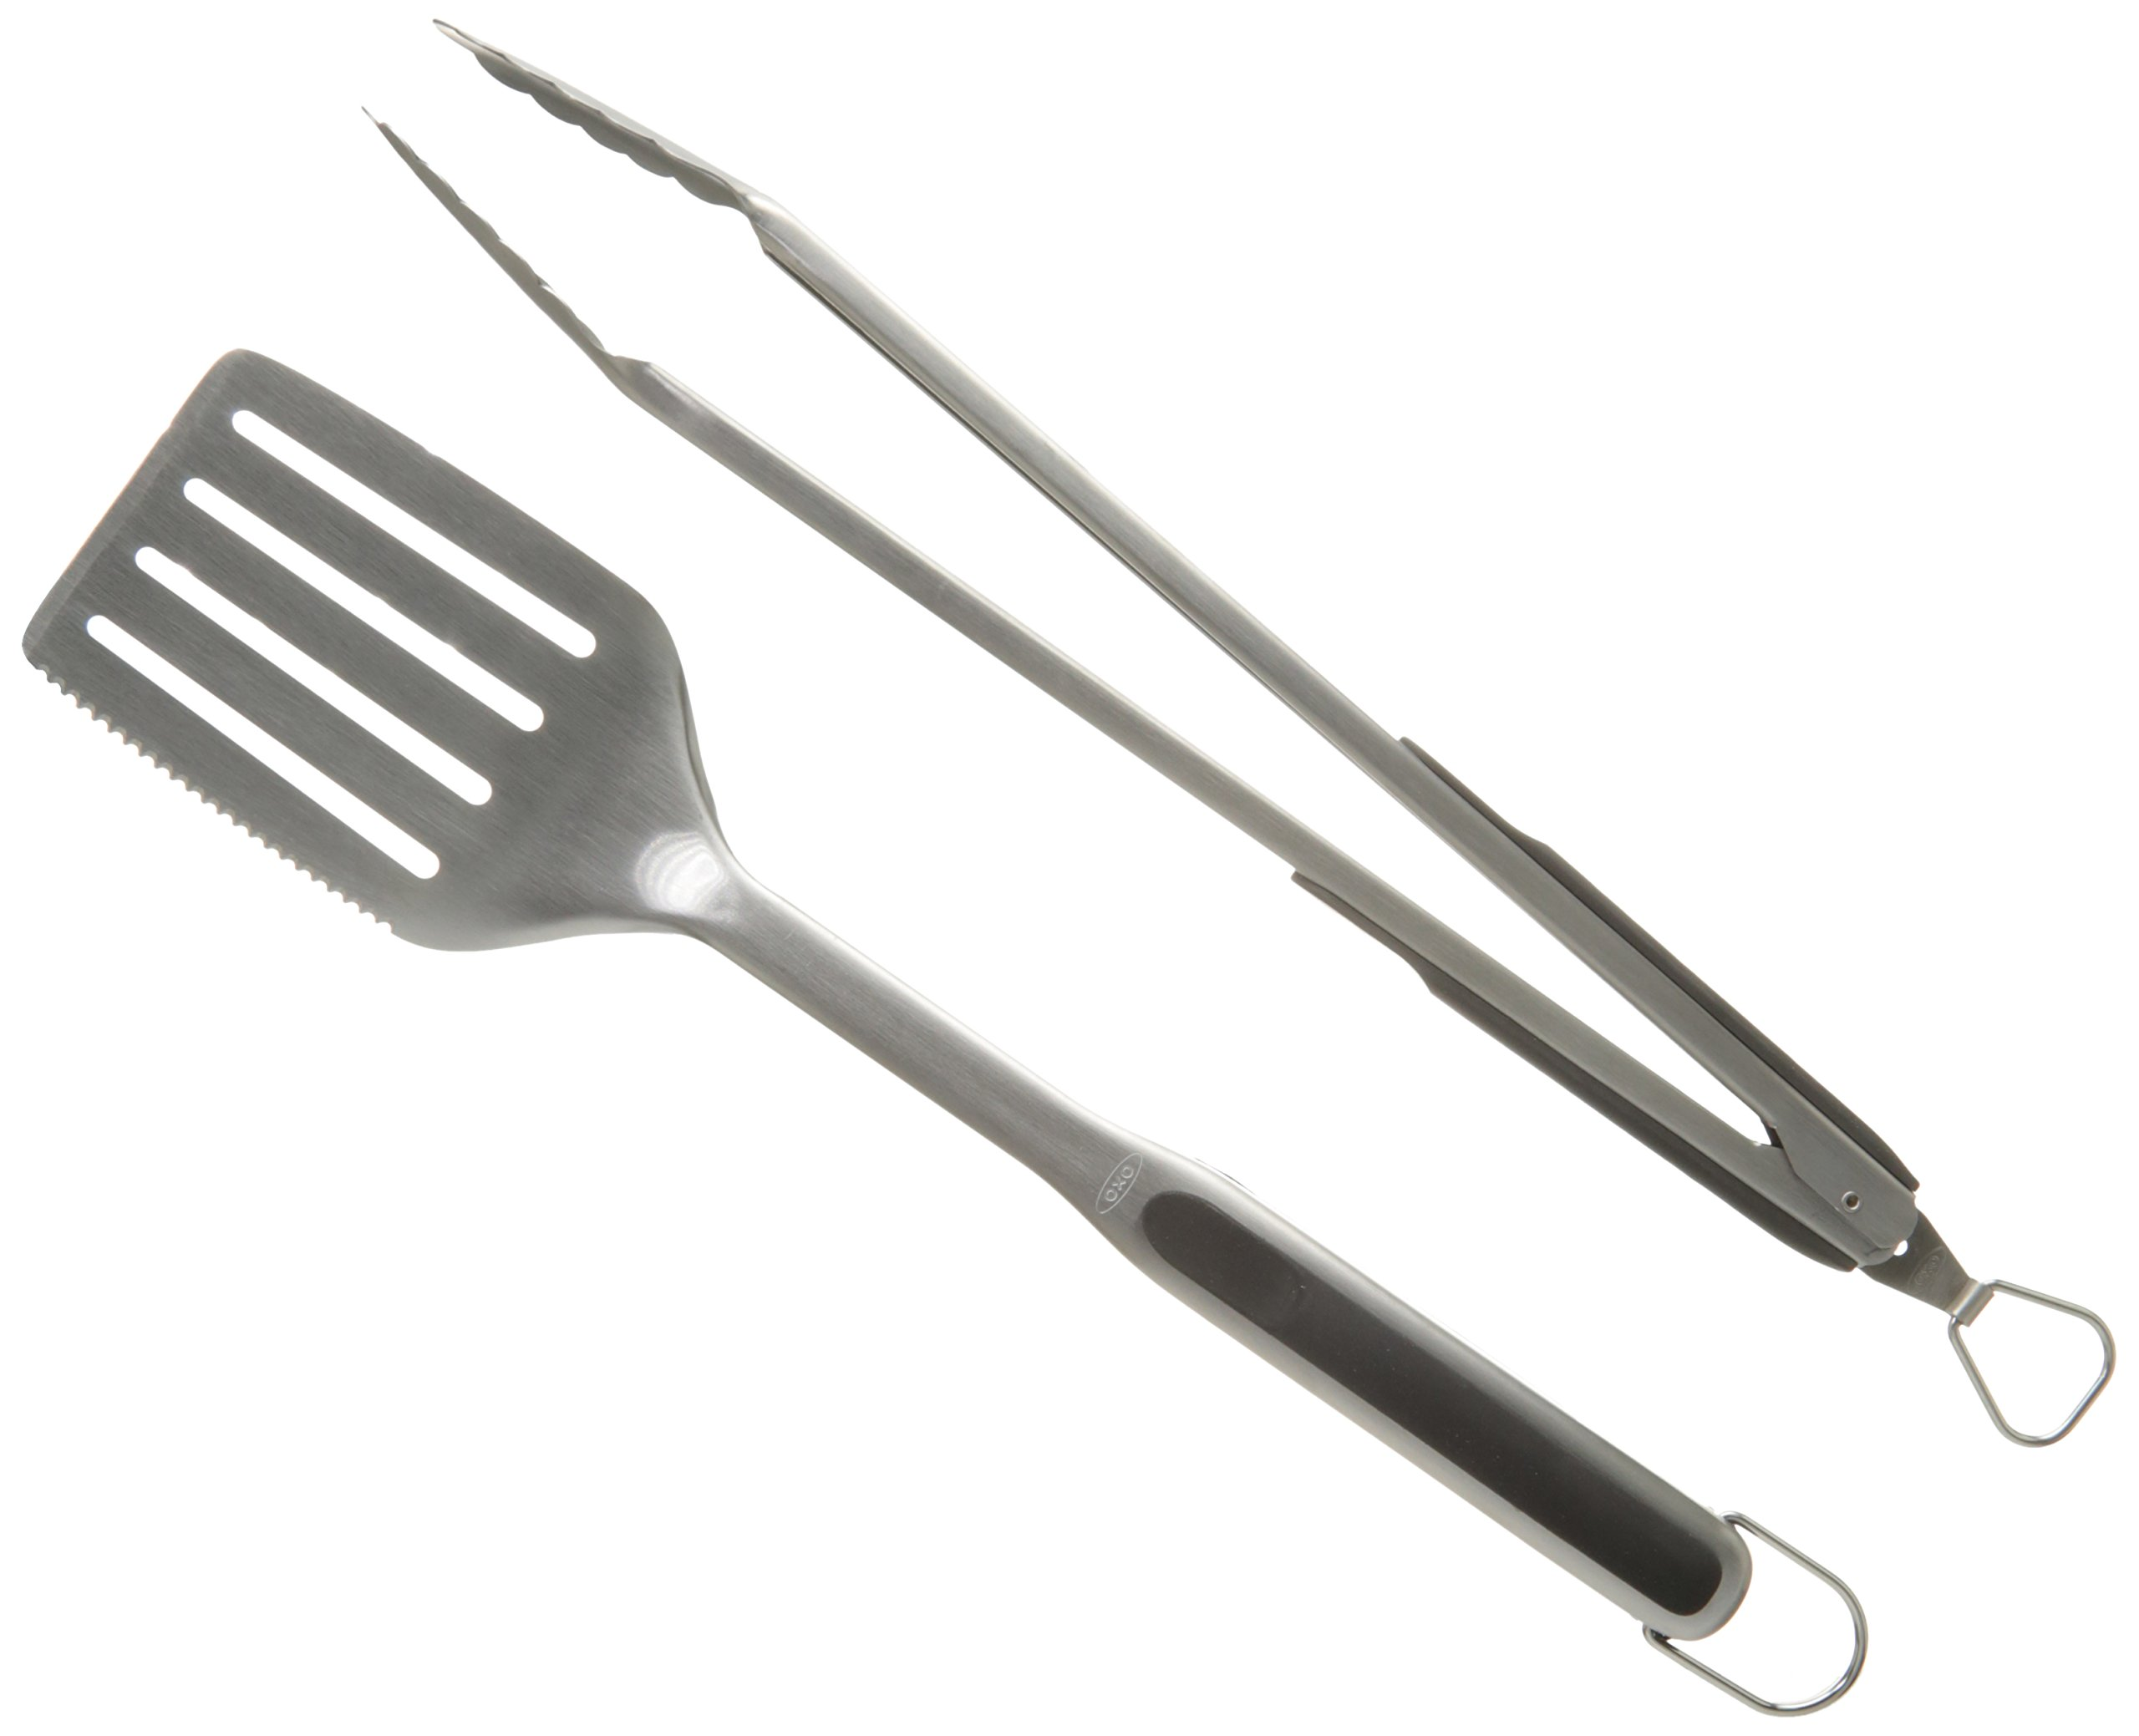 OXO Good Grips 2-Piece Grilling Set